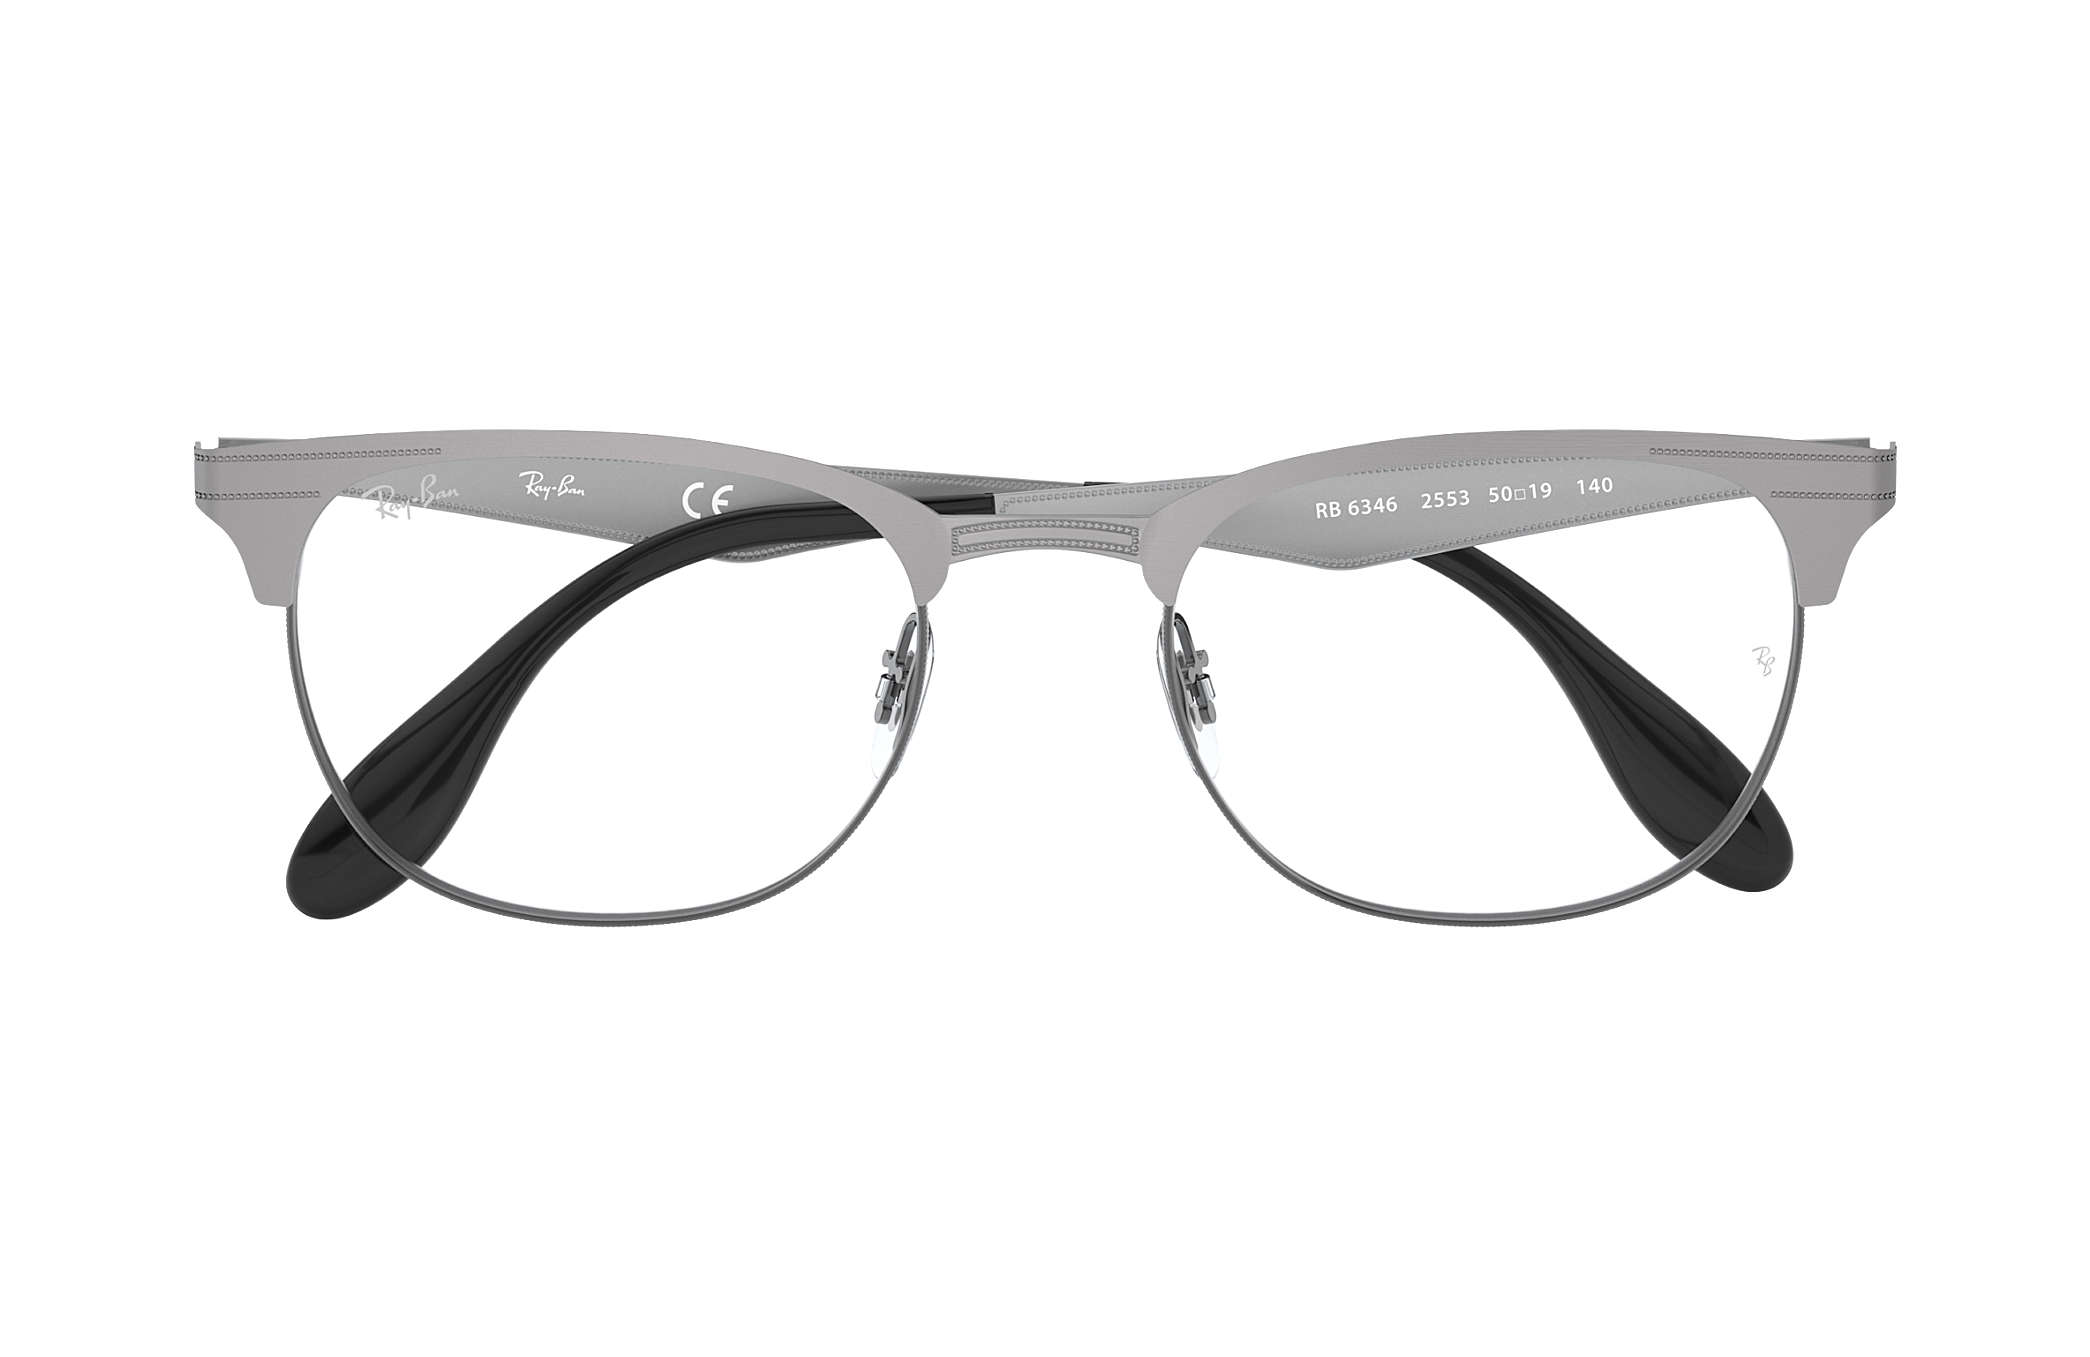 f311d6d8353 Ray-Ban eyeglasses RB6346 Gunmetal - Metal - 0RX6346255352